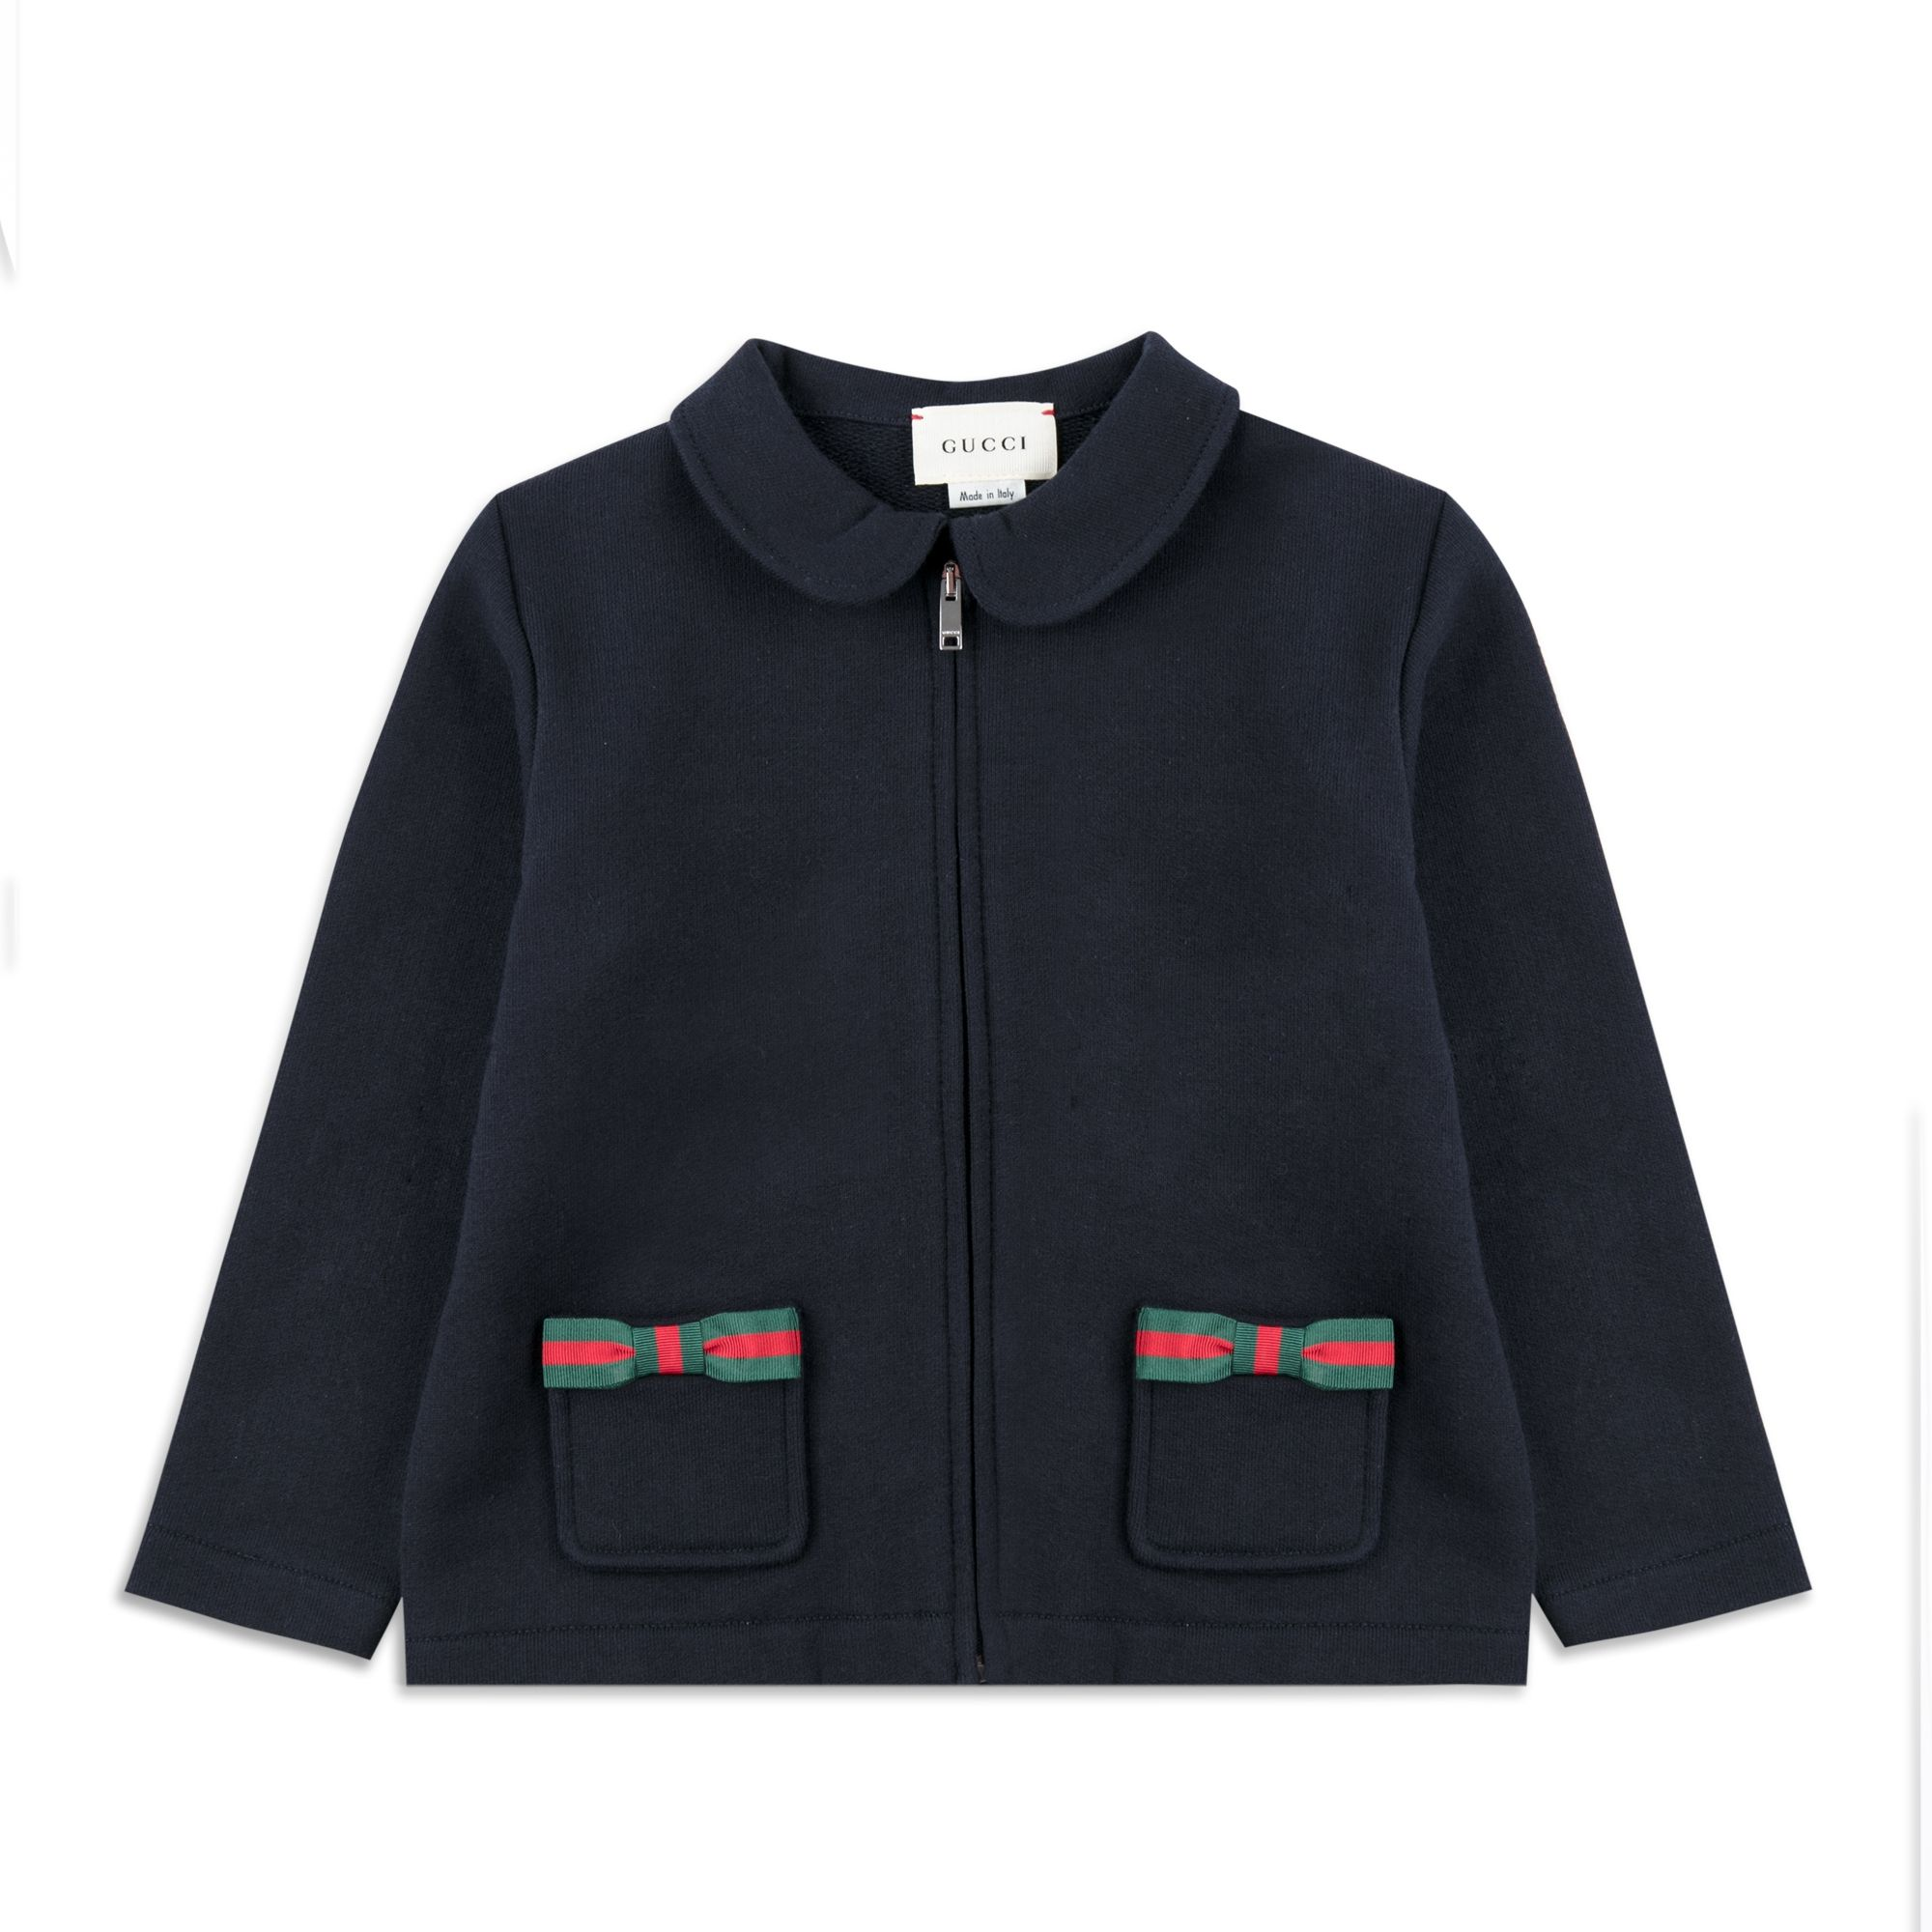 a621e8aed5c50f GUCCI Baby Girls Bow Zip Up Top - Navy Girls jersey sweat • Soft stretchy  cotton • Full zip fastening • Peter-Pan collar • Two front pockets • Web  trim bows ...